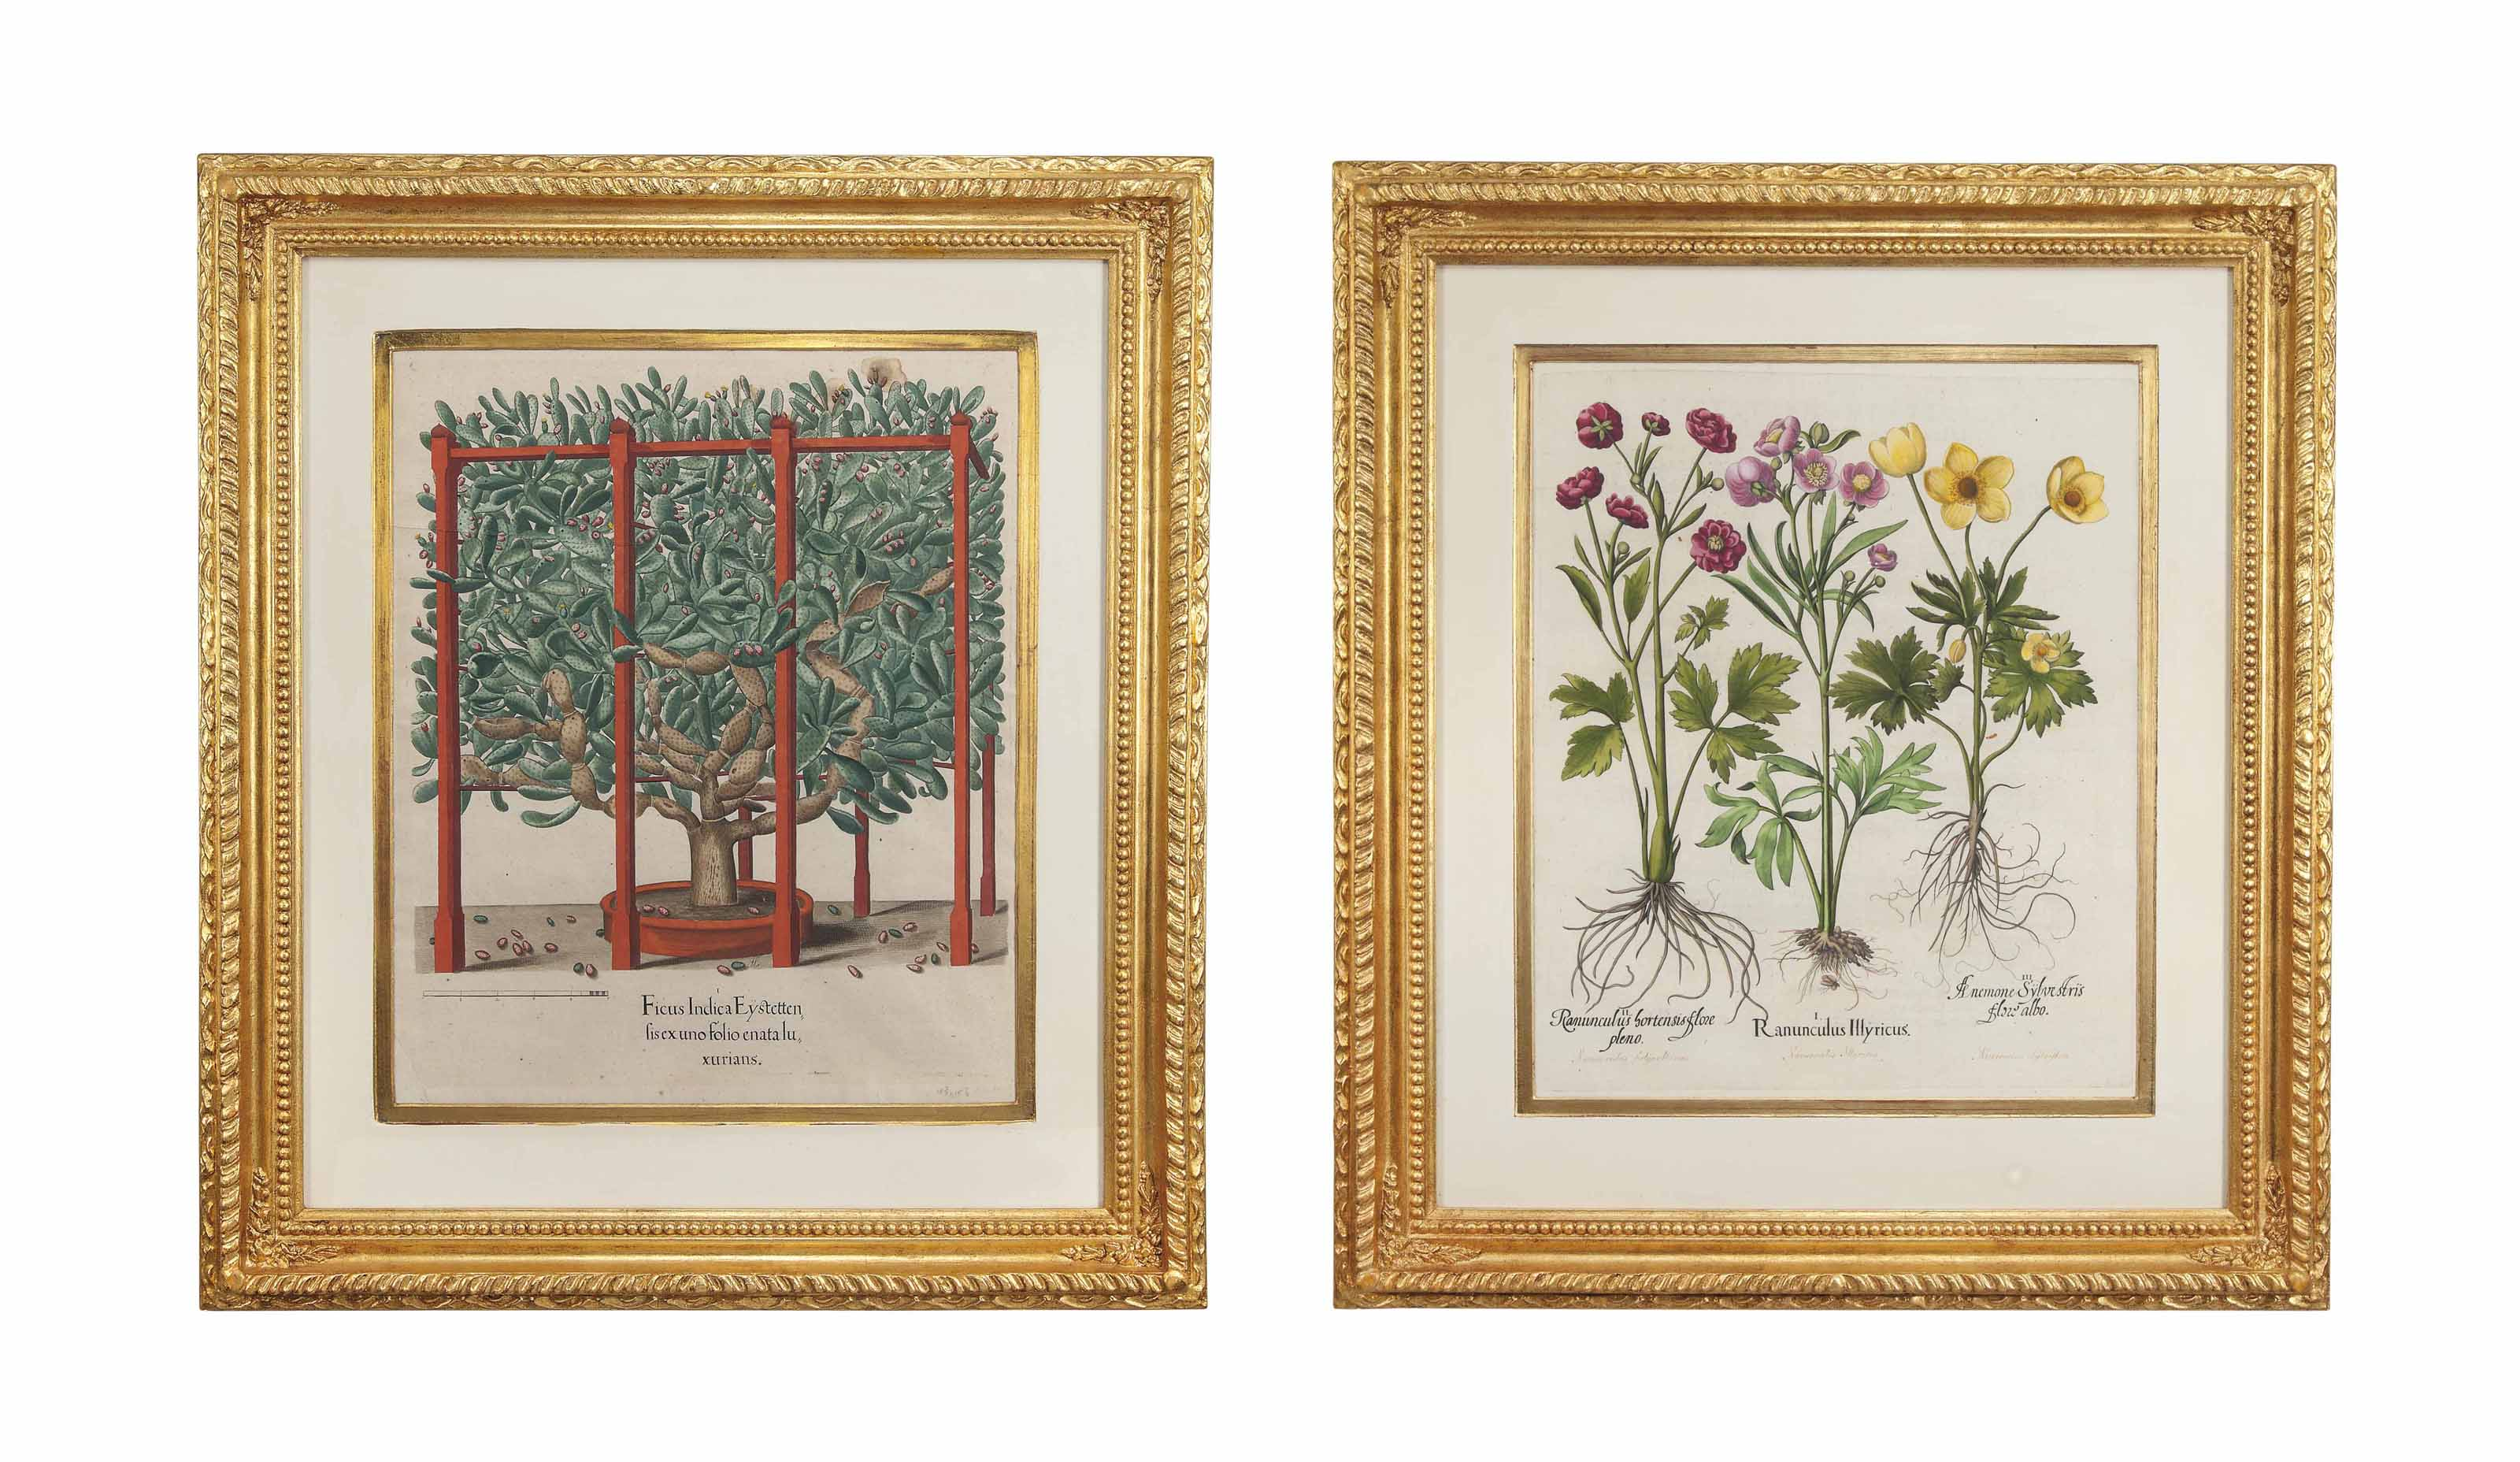 FOUR HAND-COLOURED COPPER-PLATE ENGRAVINGS FROM HORTUS EYSTETTENSIS